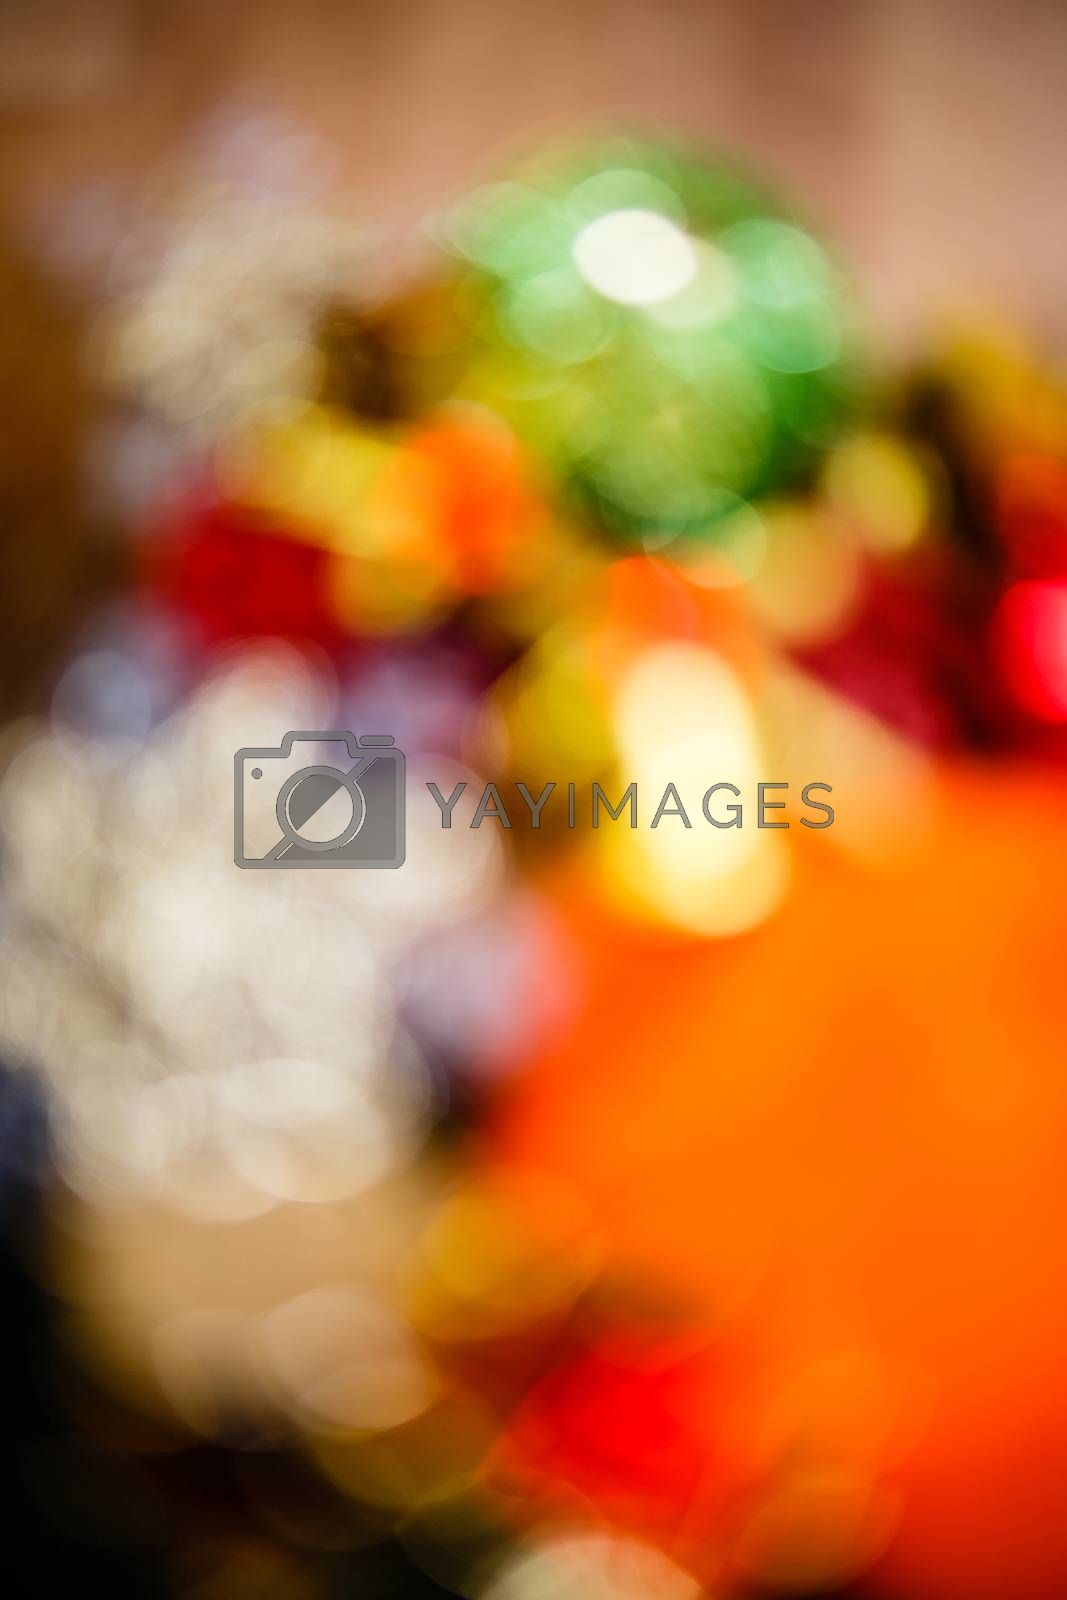 Royalty free image of Abstract christmas background by Vagengeym